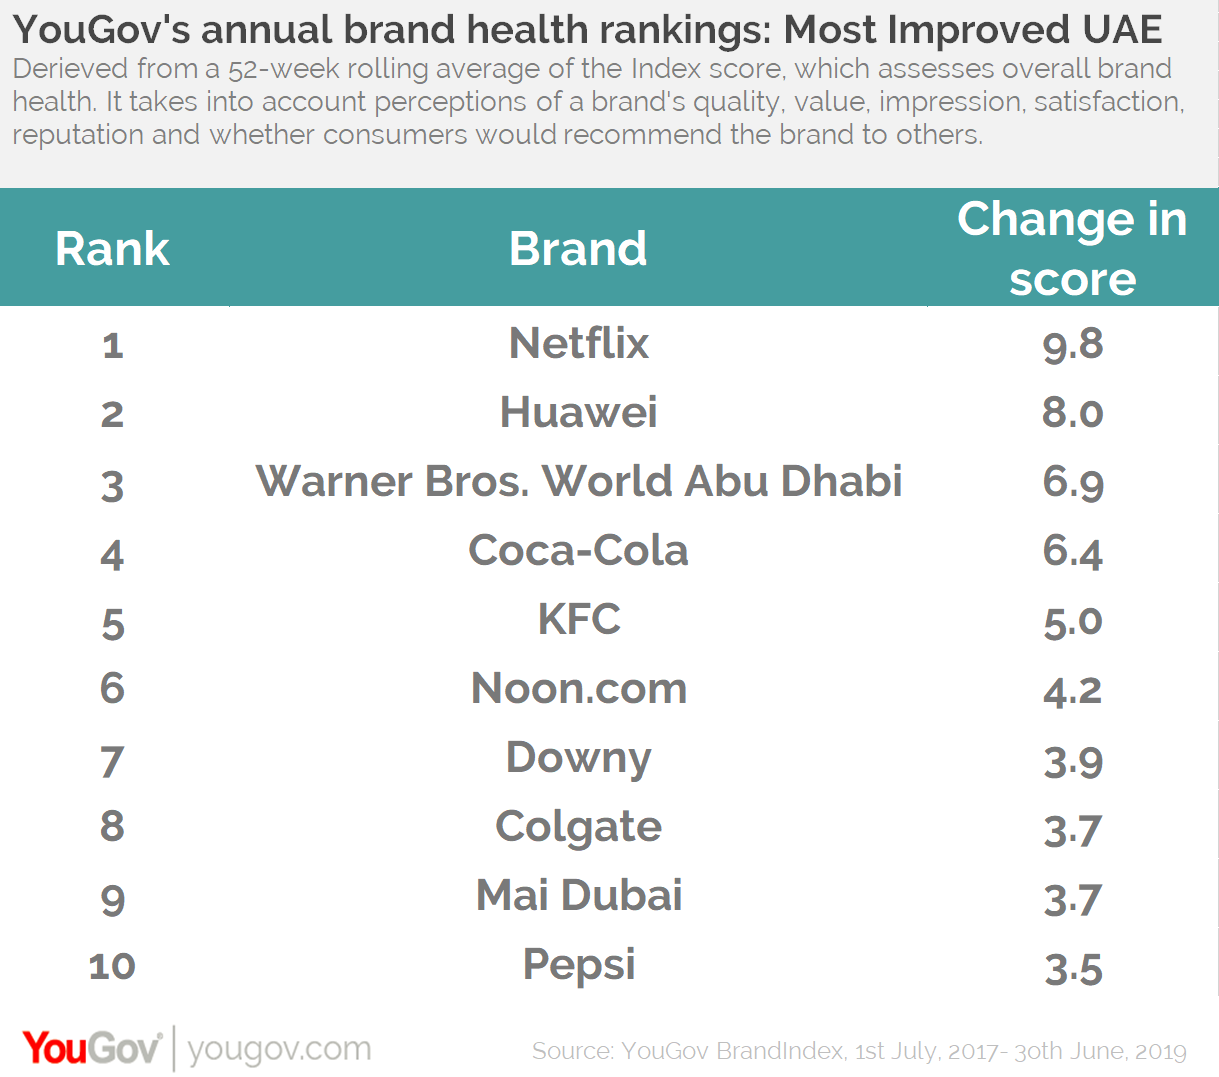 YouGov | Emirates tops YouGov's annual brand health rankings